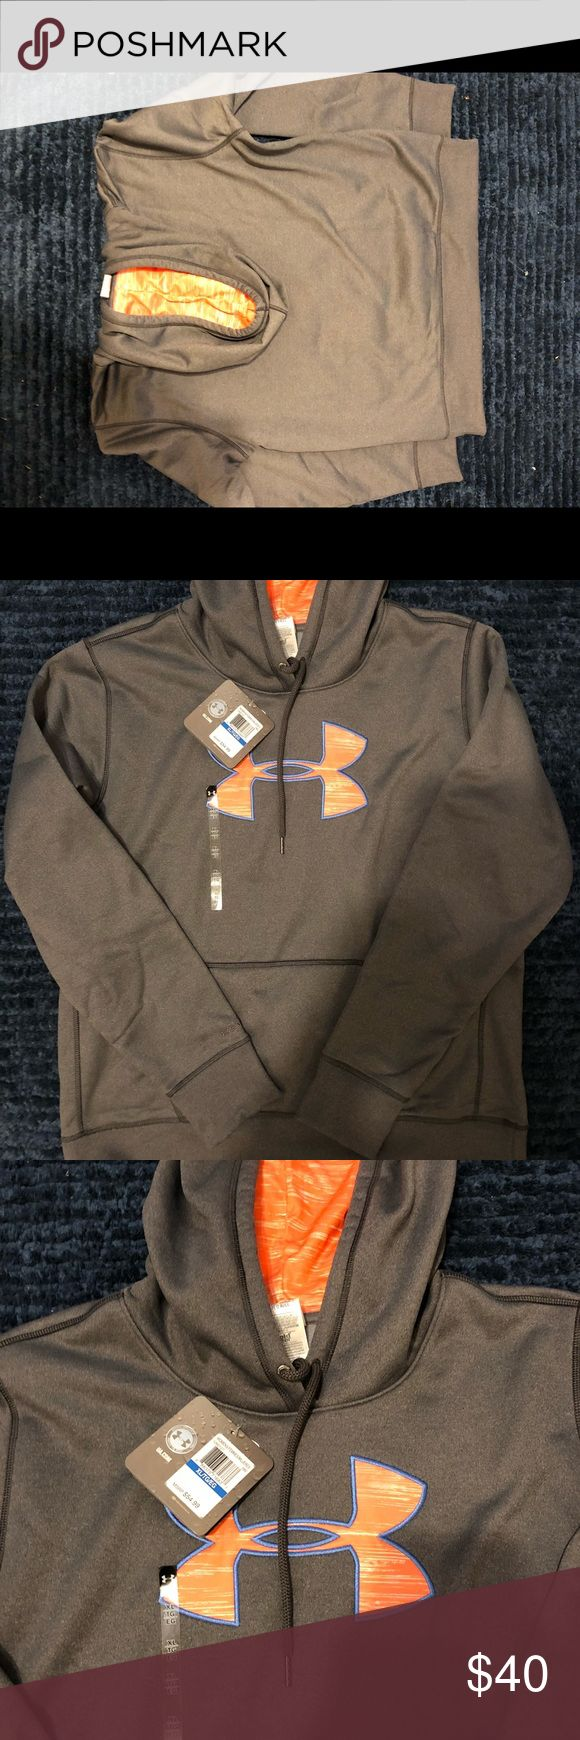 Women's Under Armour Hoodie NWT Women's XL Under Armour Hoodie. Gray with peachy neon orange symbol with powder blue outline. Brand new with tags. Closet kept in a smoke free home. Under Armour Tops Sweatshirts & Hoodies